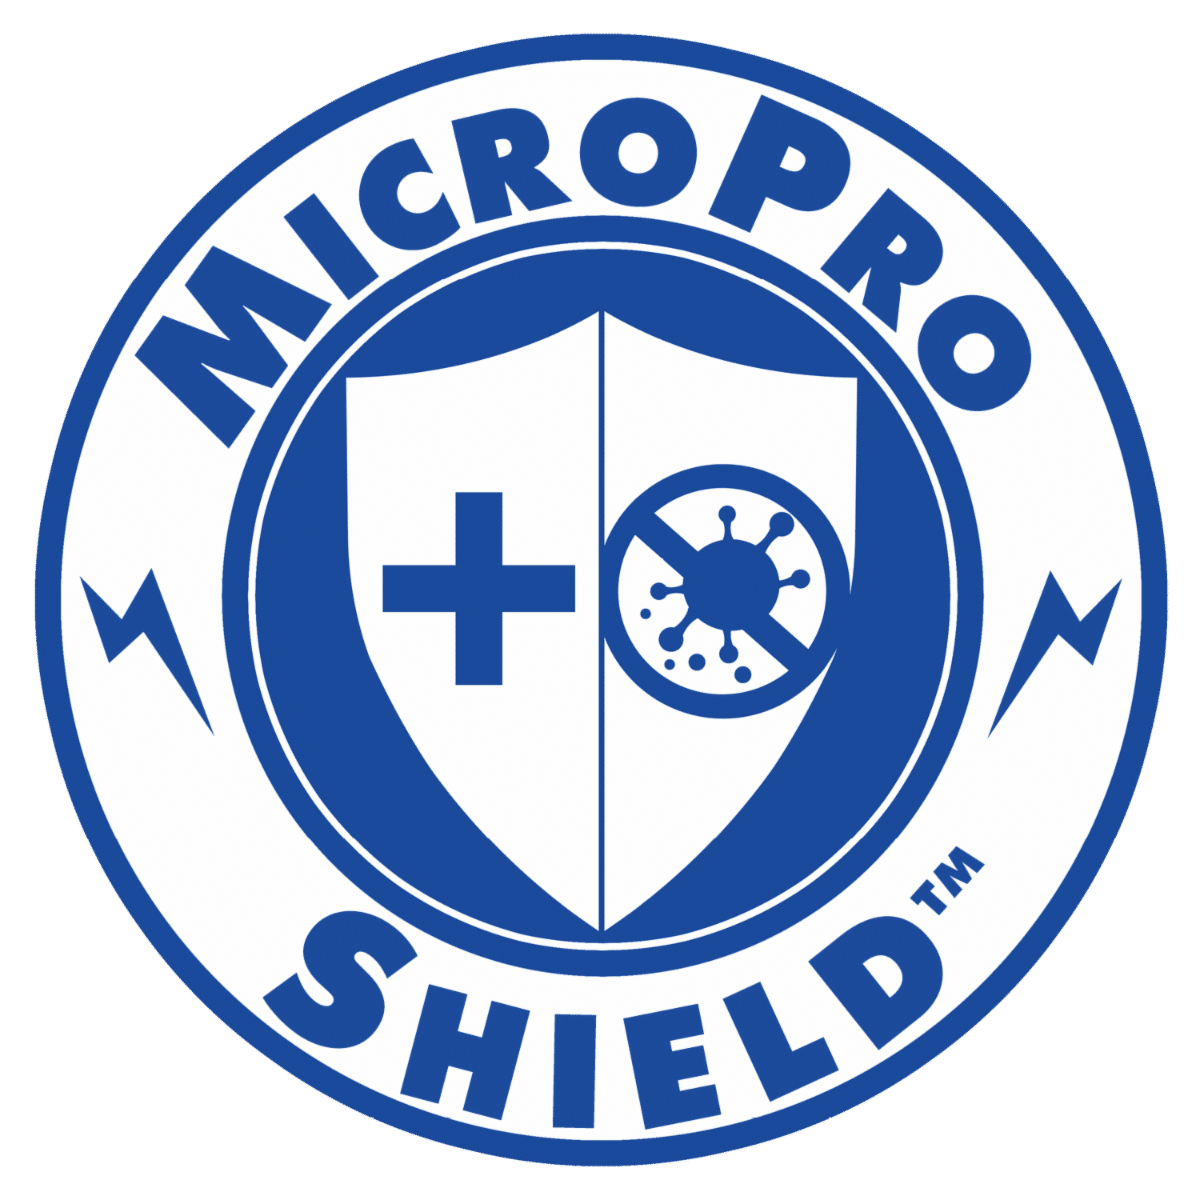 micropro shield logo